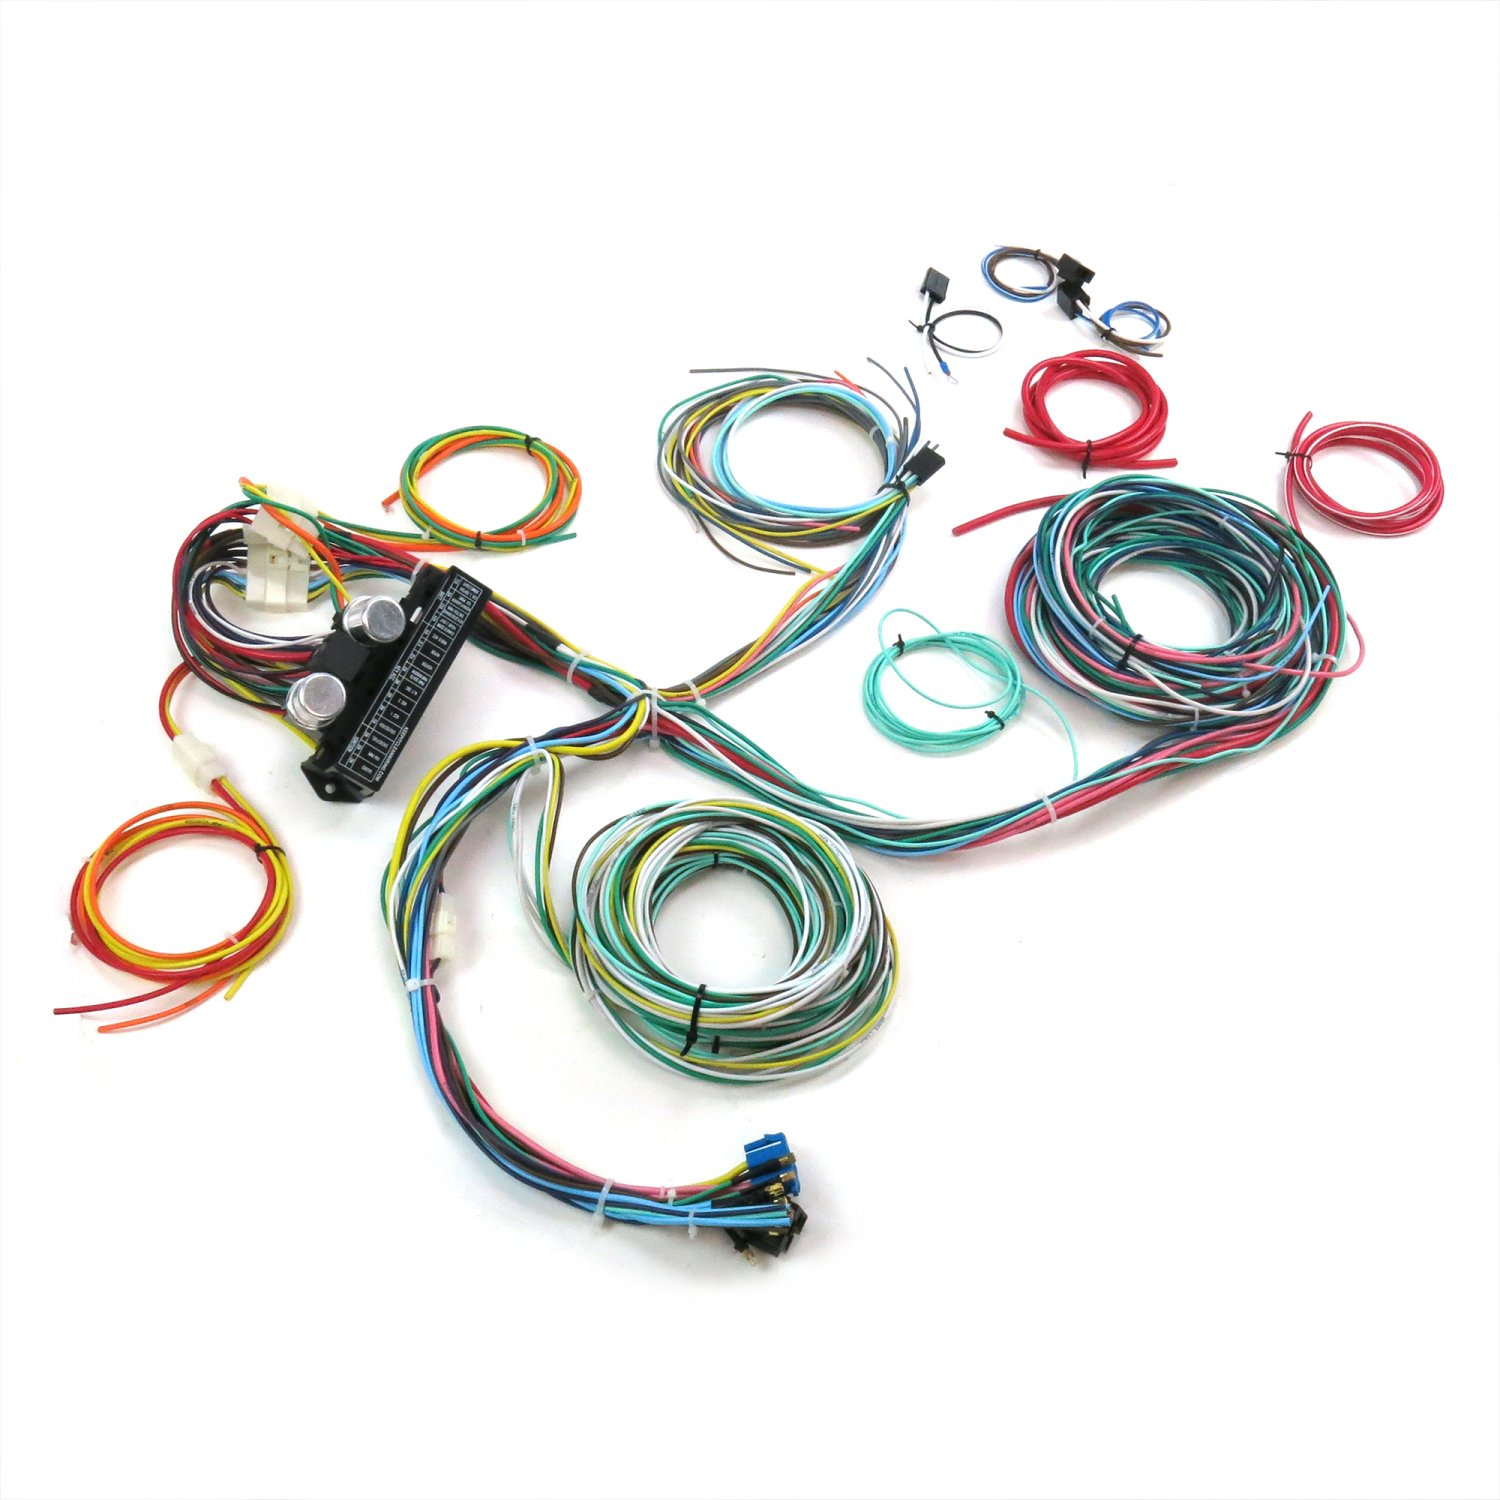 Wiring Harness For Vintage Cars : Ultimate fuse v conversion wiring harness